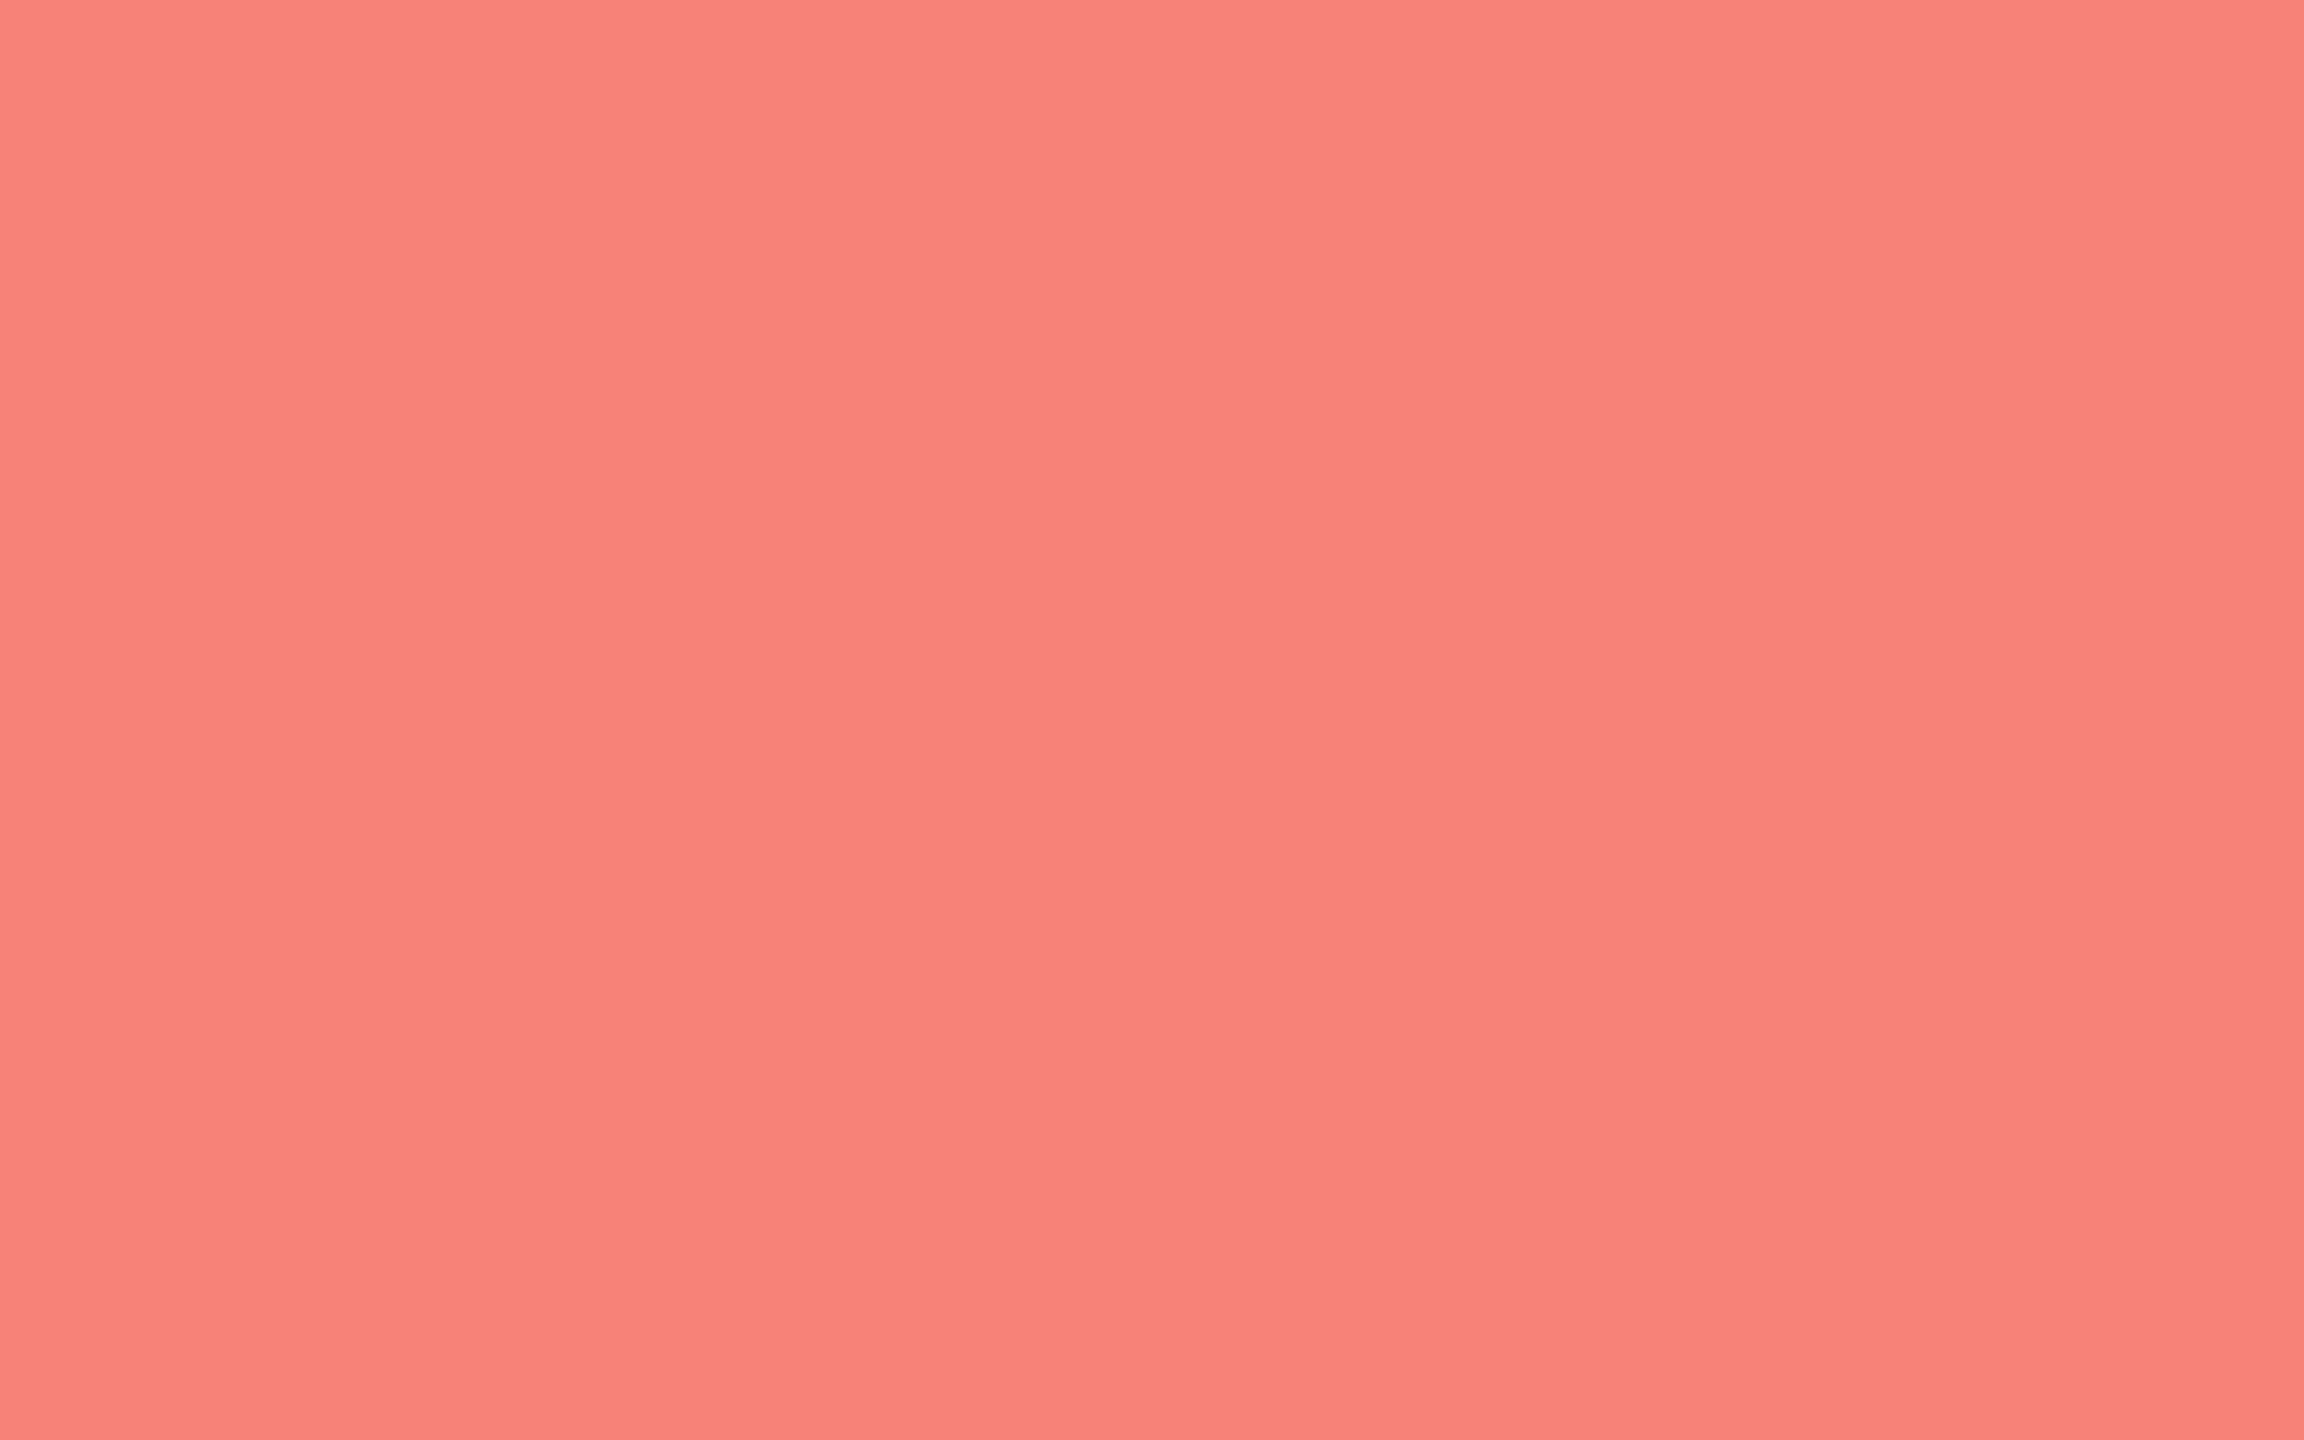 2304x1440 Tea Rose Orange Solid Color Background